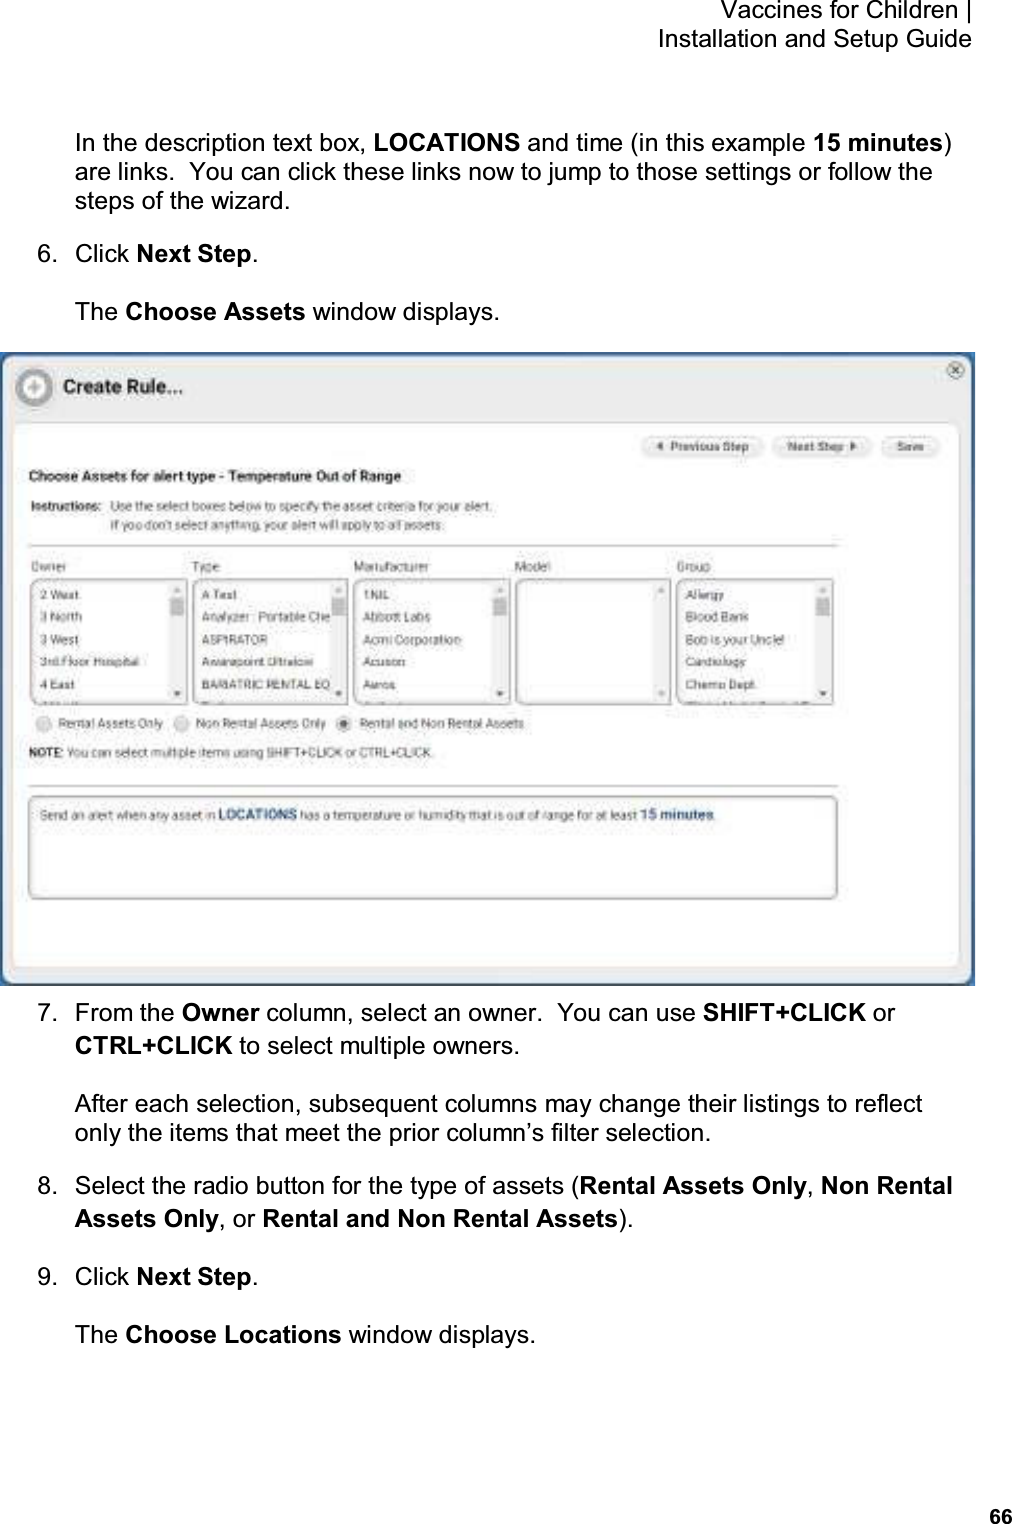 66 Vaccines for Children    Installation and Setup Guide In the description text box, LOCATIONS and time (in this example 15 minutes) are links.  You can click these links now to jump to those settings or follow the steps of the wizard. 6.  Click Next Step. The Choose Assets window displays.  7.  From the Owner column, select an owner.  You can use SHIFT+CLICK or CTRL+CLICK to select multiple owners. After each selection, subsequent columns may change their listings to reflect only the items that meet the prior column's filter selection. 8.  Select the radio button for the type of assets (Rental Assets Only, Non Rental Assets Only, or Rental and Non Rental Assets). 9.  Click Next Step. The Choose Locations window displays.